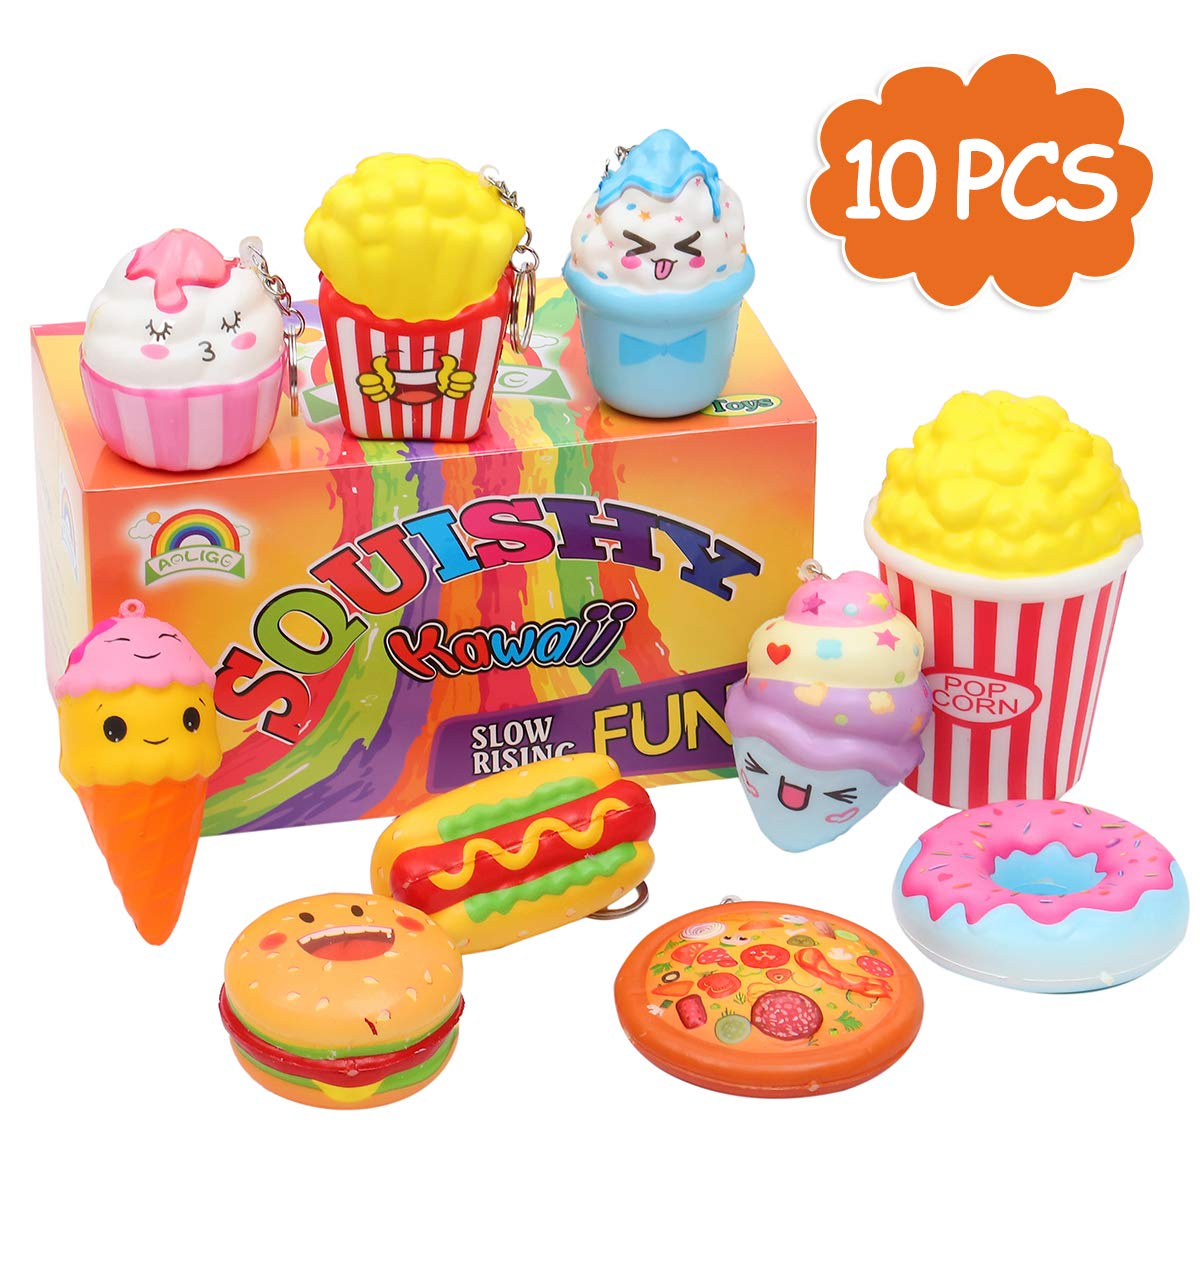 AOLIGE Slow Rising Squishies Pretend Play Food for Kids Kitchen Toys Pack of 10 by AOLIGE